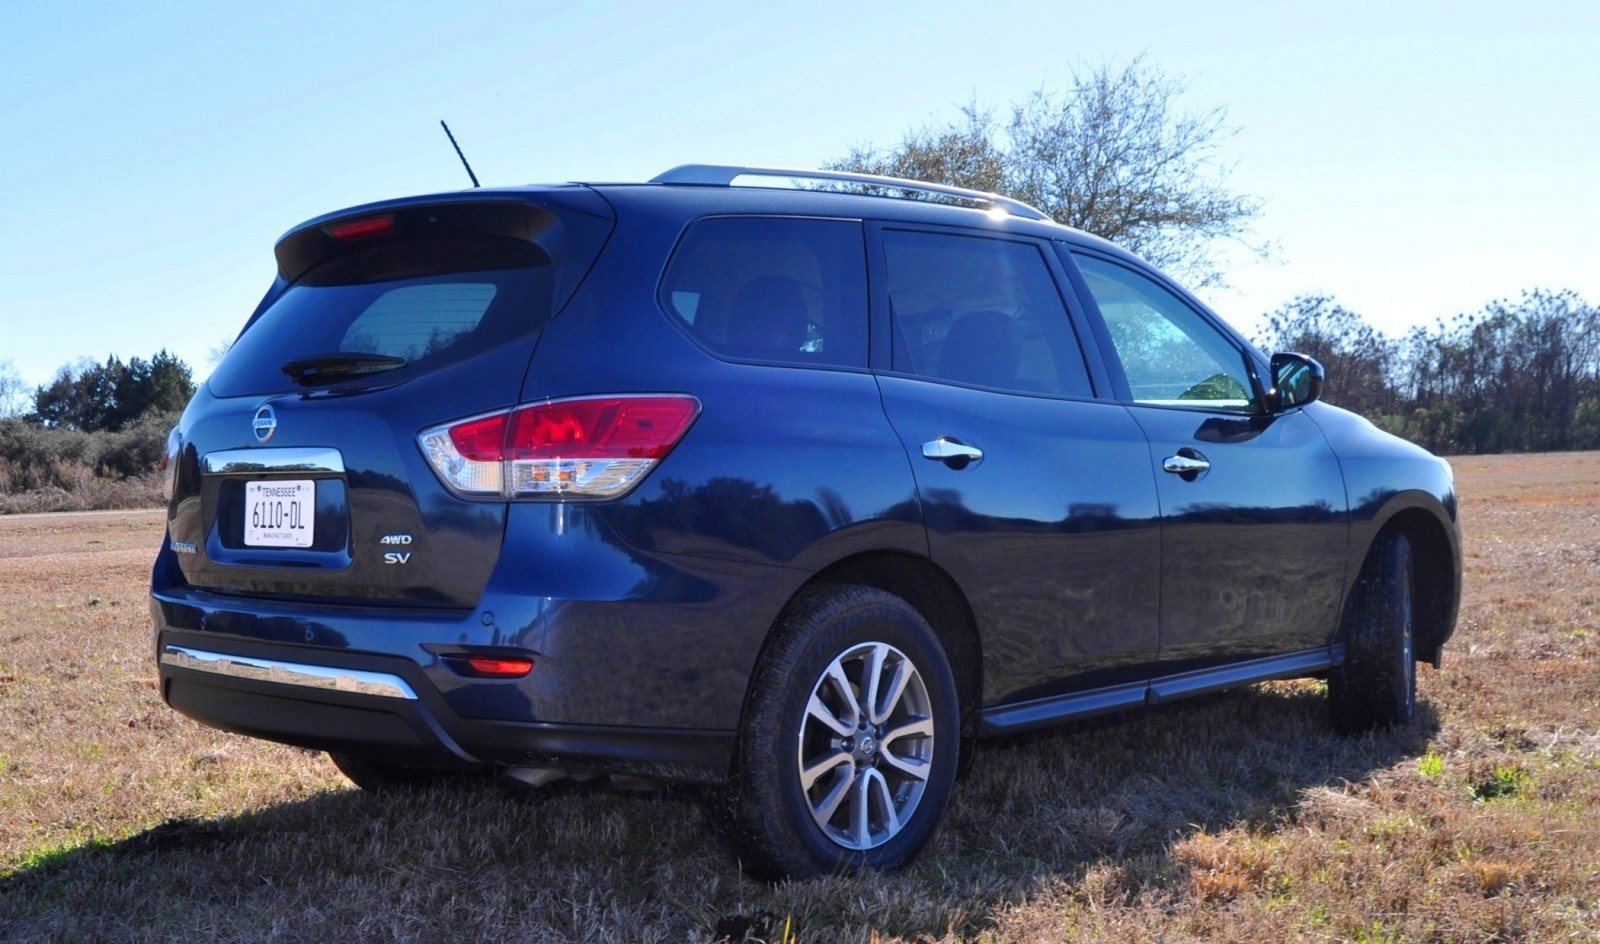 Road Test Review - 2015 Nissan Pathfinder SV 4WD 105